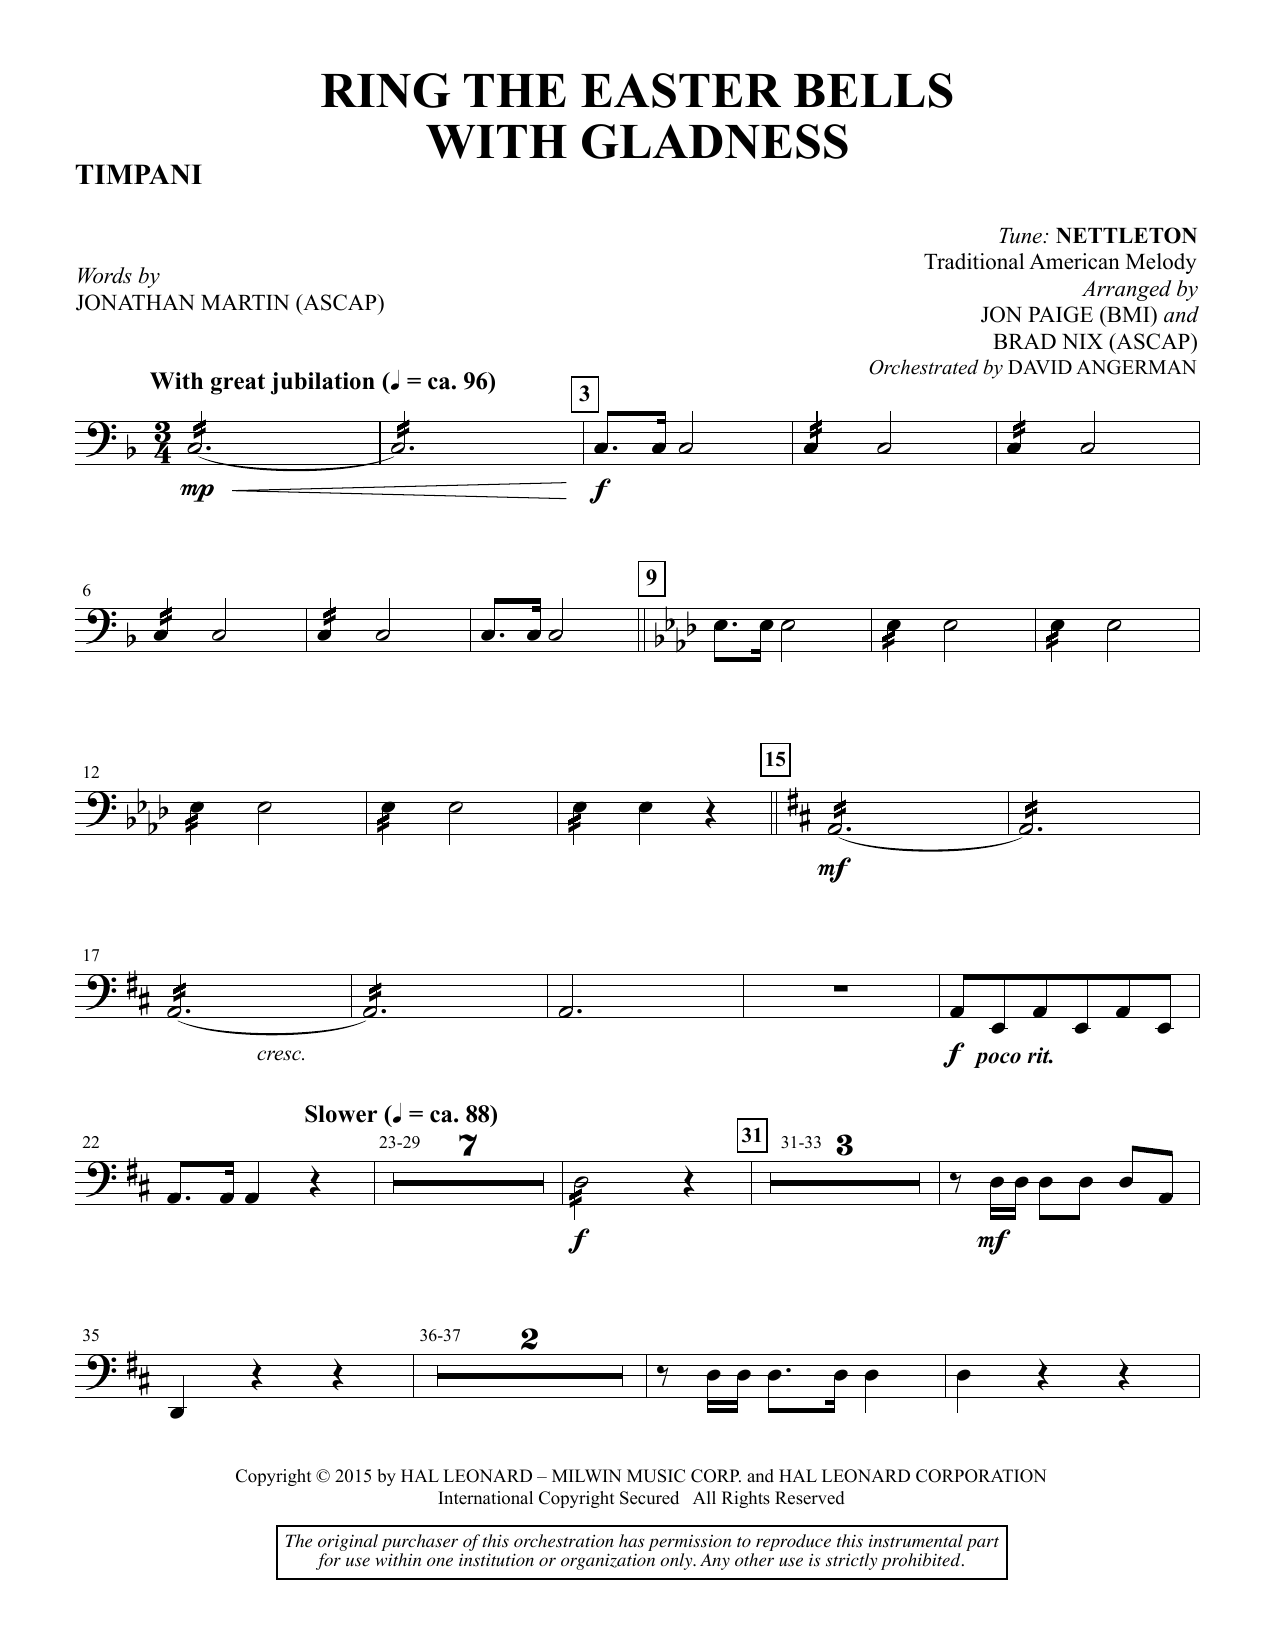 Ring the Easter Bells with Gladness - Timpani sheet music